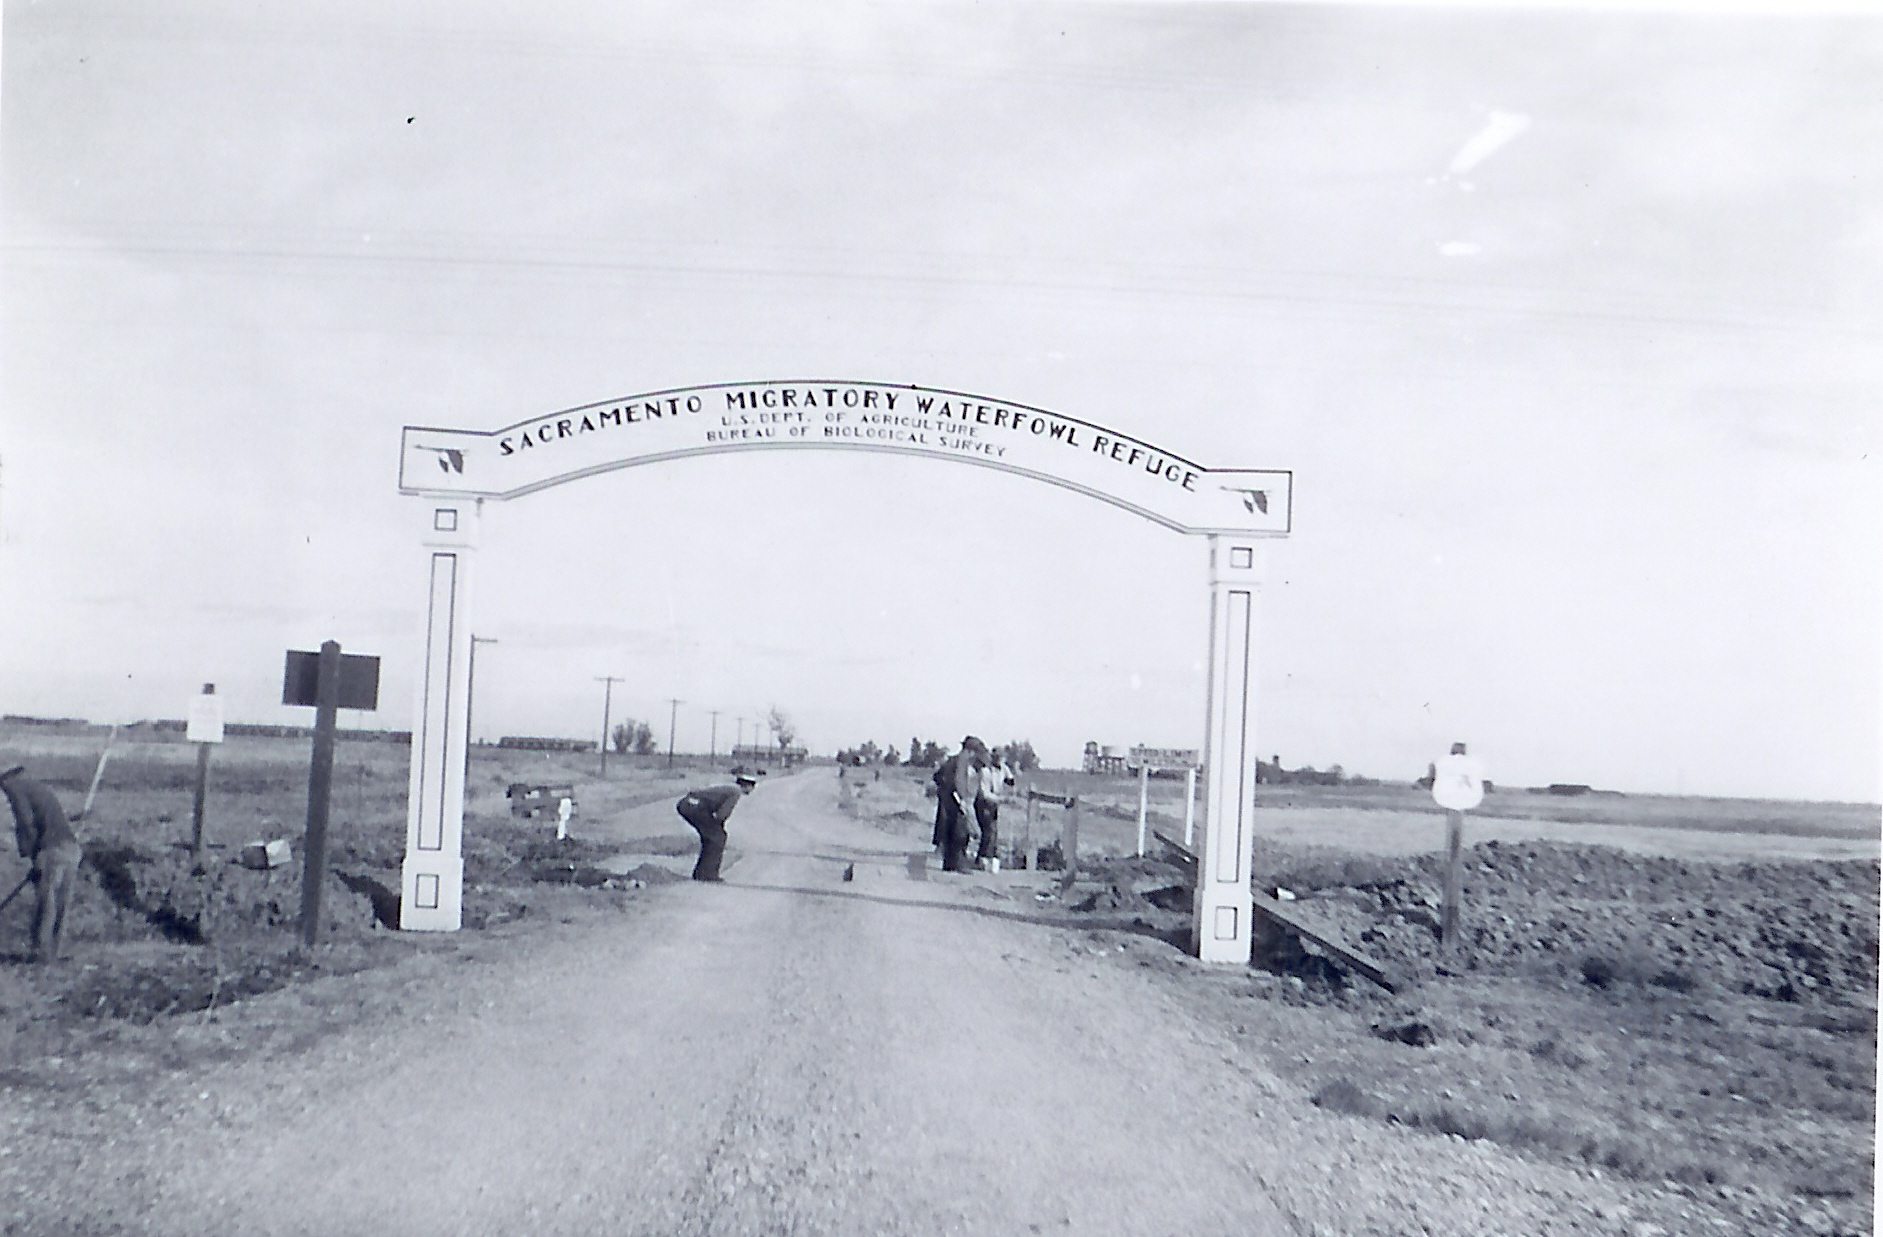 Entrance to Sacramento Wildlife Refuge, 1938